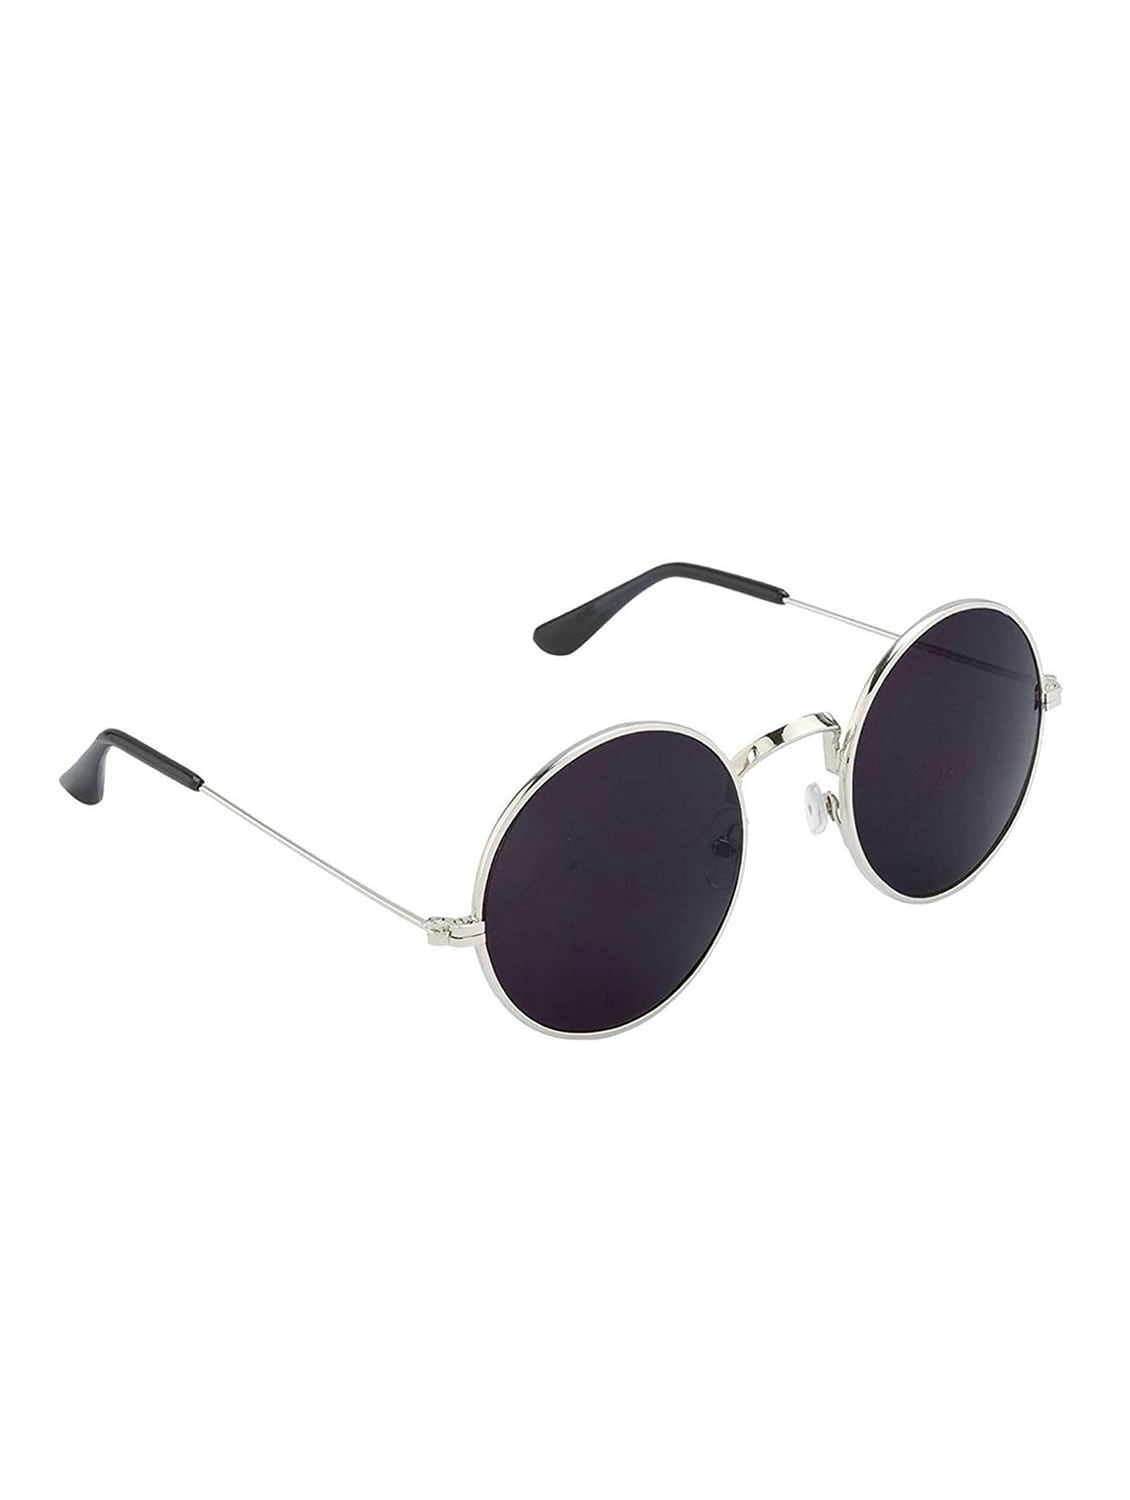 b3c7f8aede Buy Eagle Oval Black Silver Round Gandhi Combo Sunglasses by Eagle - Online  shopping for Men Sunglasses in India